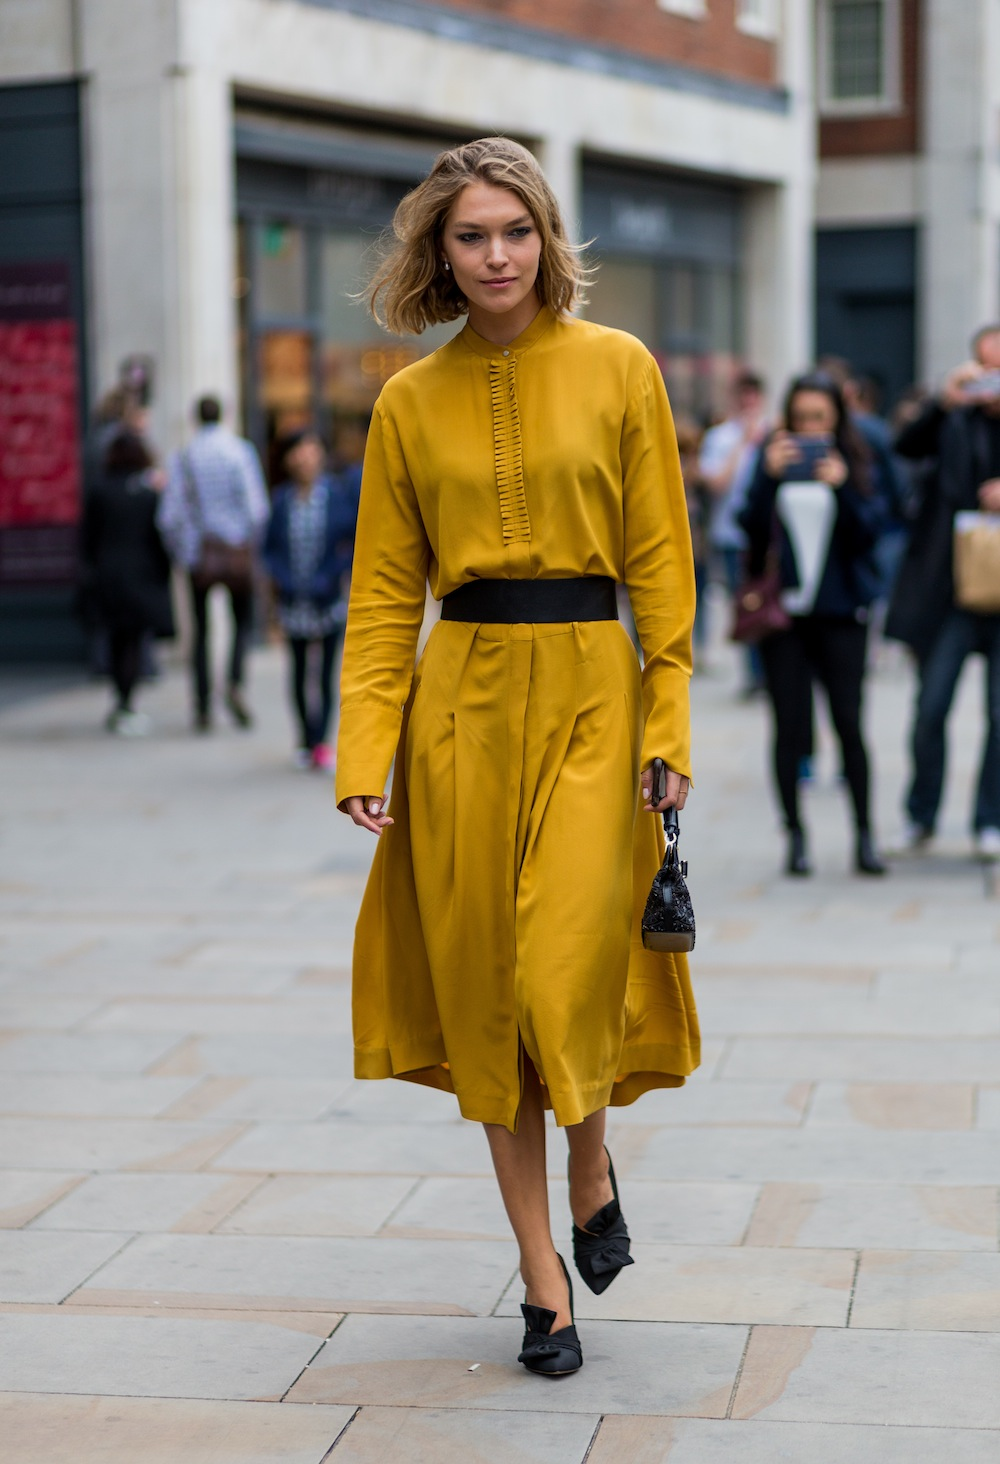 LONDON, ENGLAND - SEPTEMBER 18: Model Arizona Muse wearing a mustard dress outside Topshop during London Fashion Week Spring/Summer collections 2017 on September 18, 2016 in London, United Kingdom. (Photo by Christian Vierig/Getty Images)